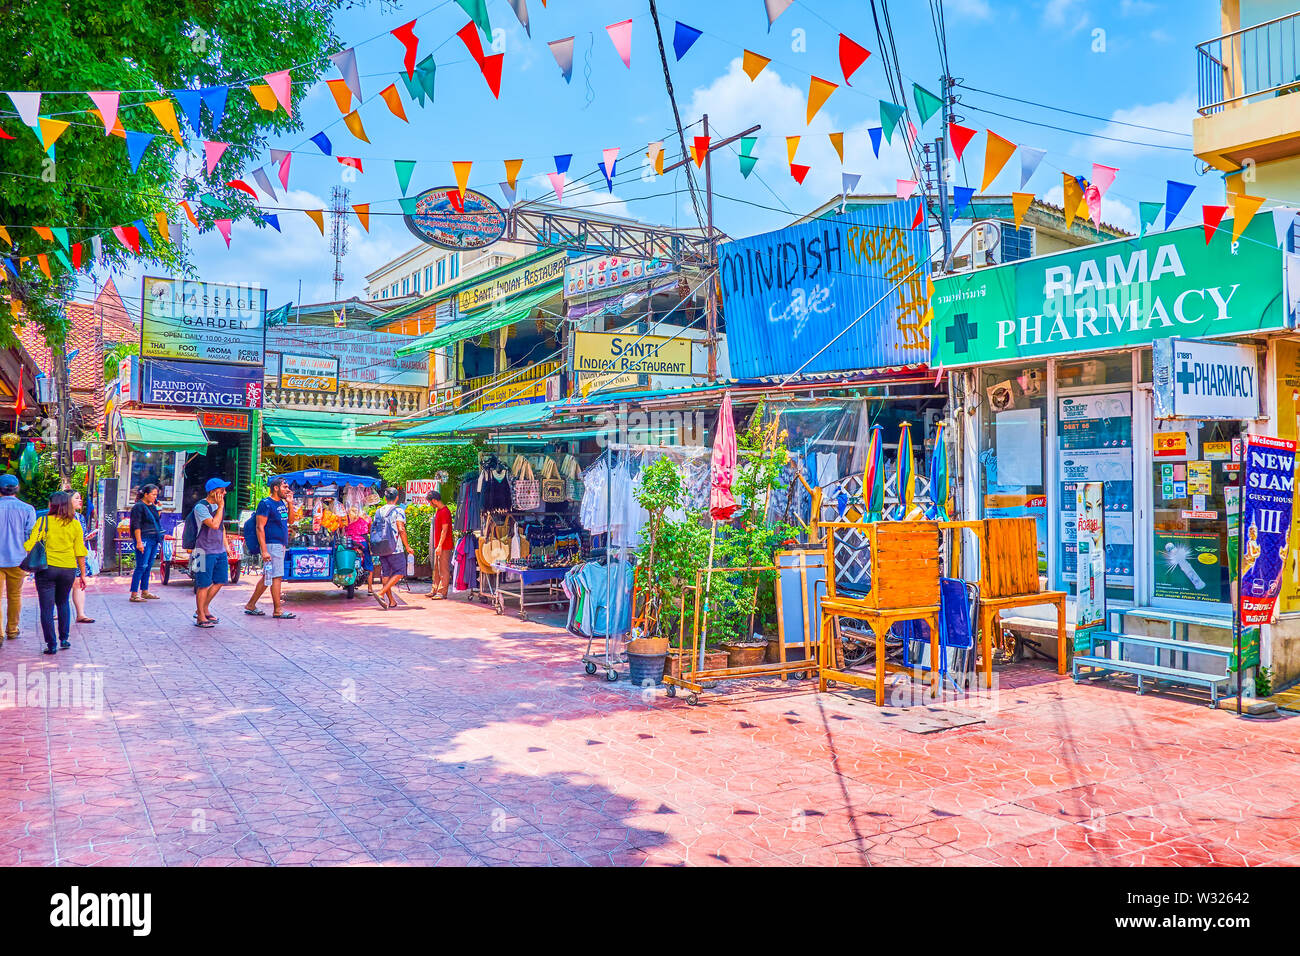 BANGKOK, THAILAND - APRIL 22, 2019: The tourist pedestrian Ram Buttri street offers all needed goods and services for comfortable living in the city, - Stock Image